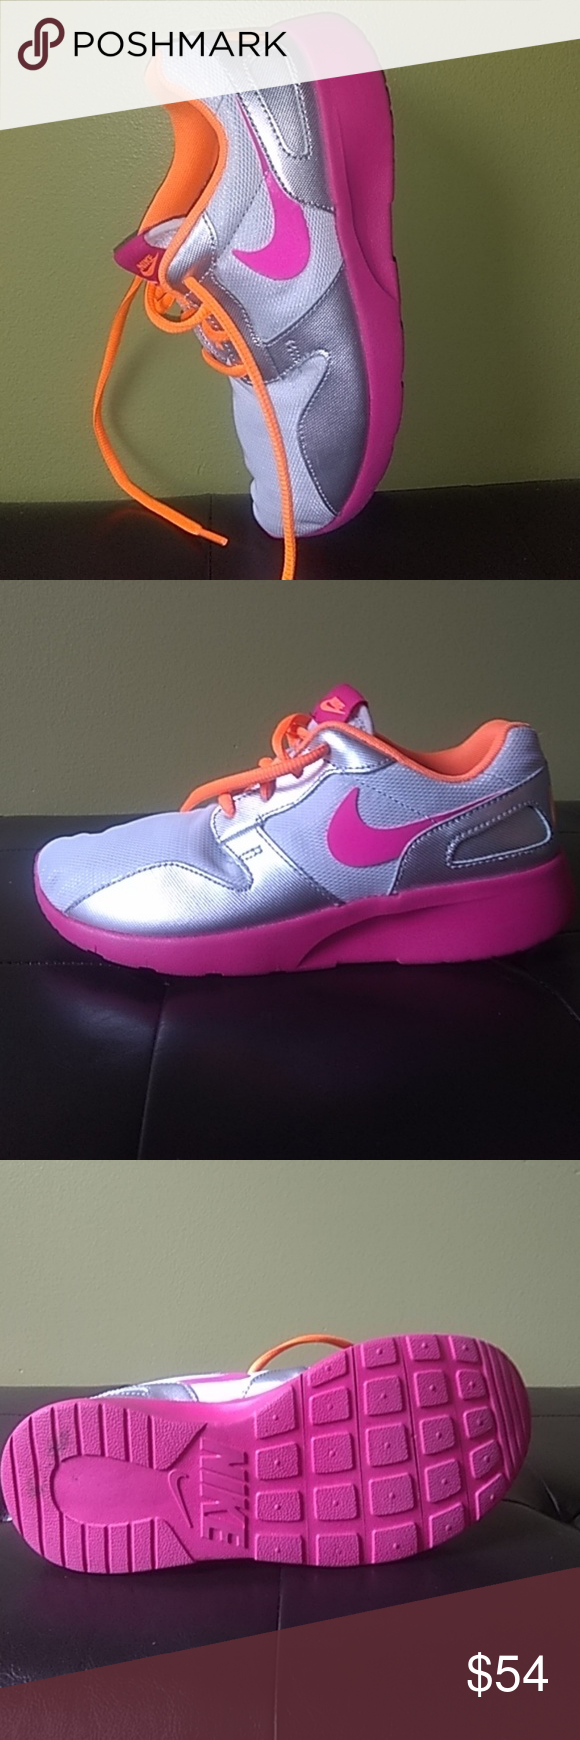 Nike silver sneaker with neon orange and